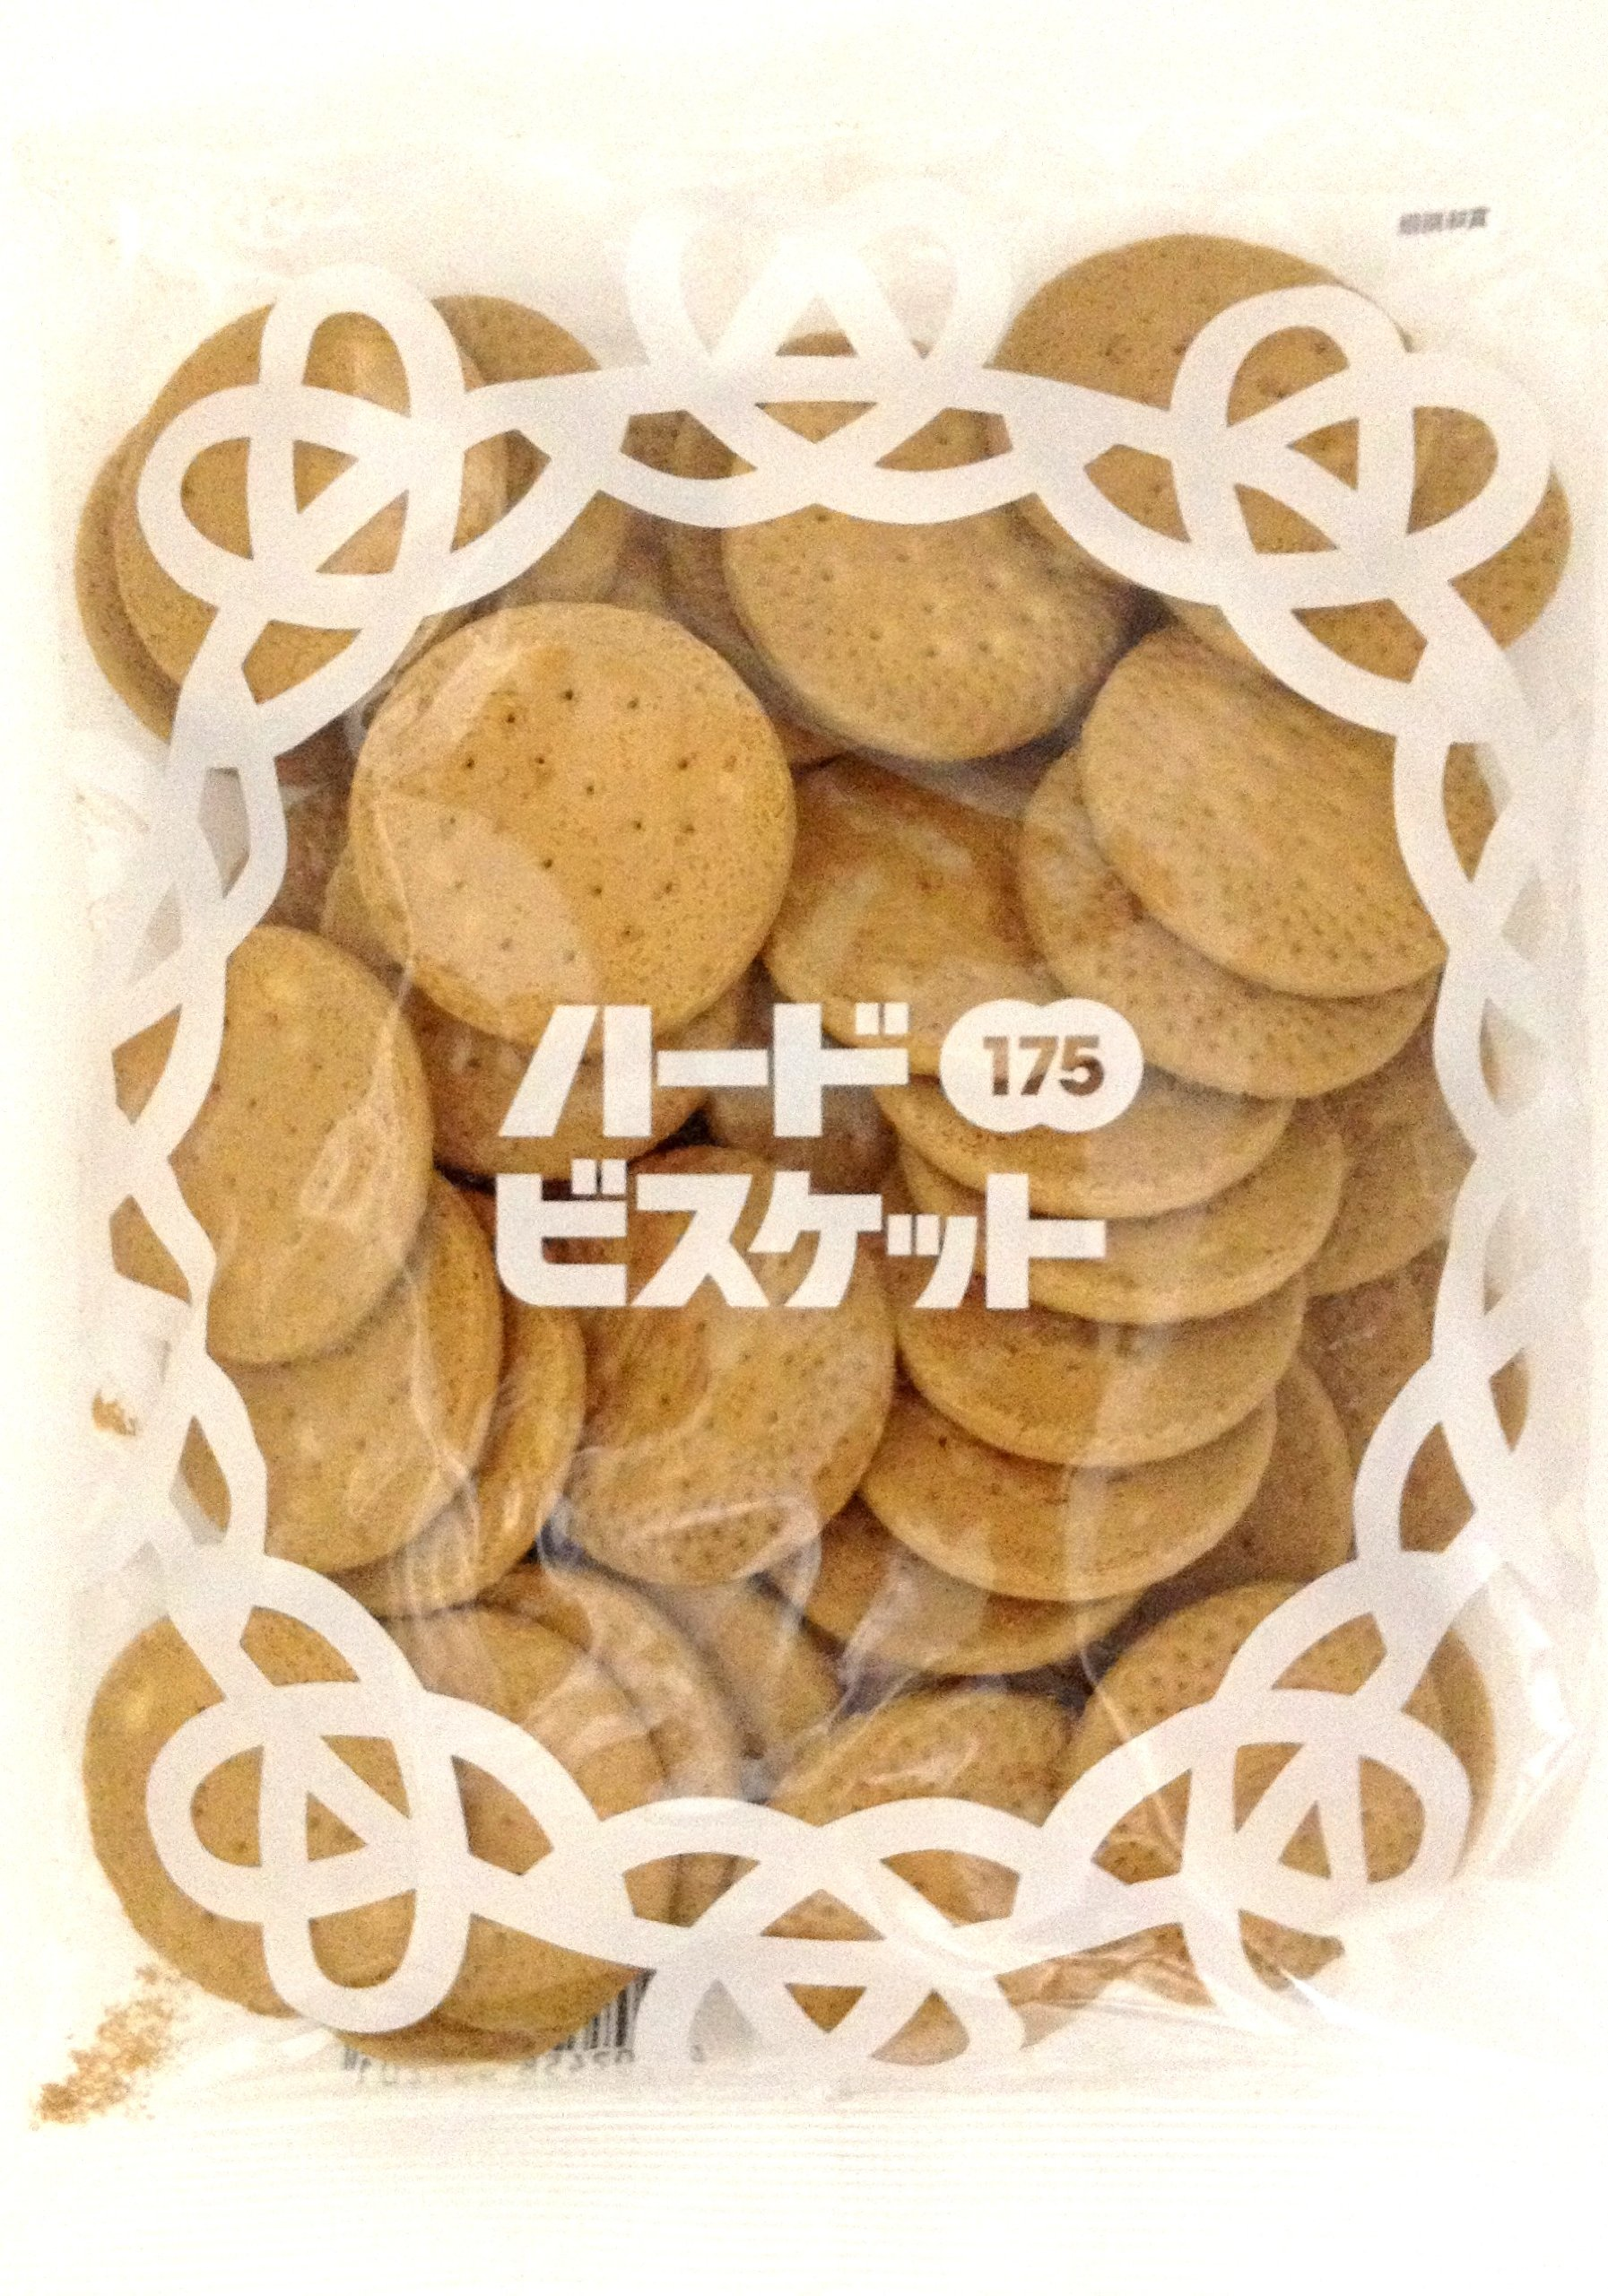 Hokuriku Confectionery hard biscuits 175gX12 bags